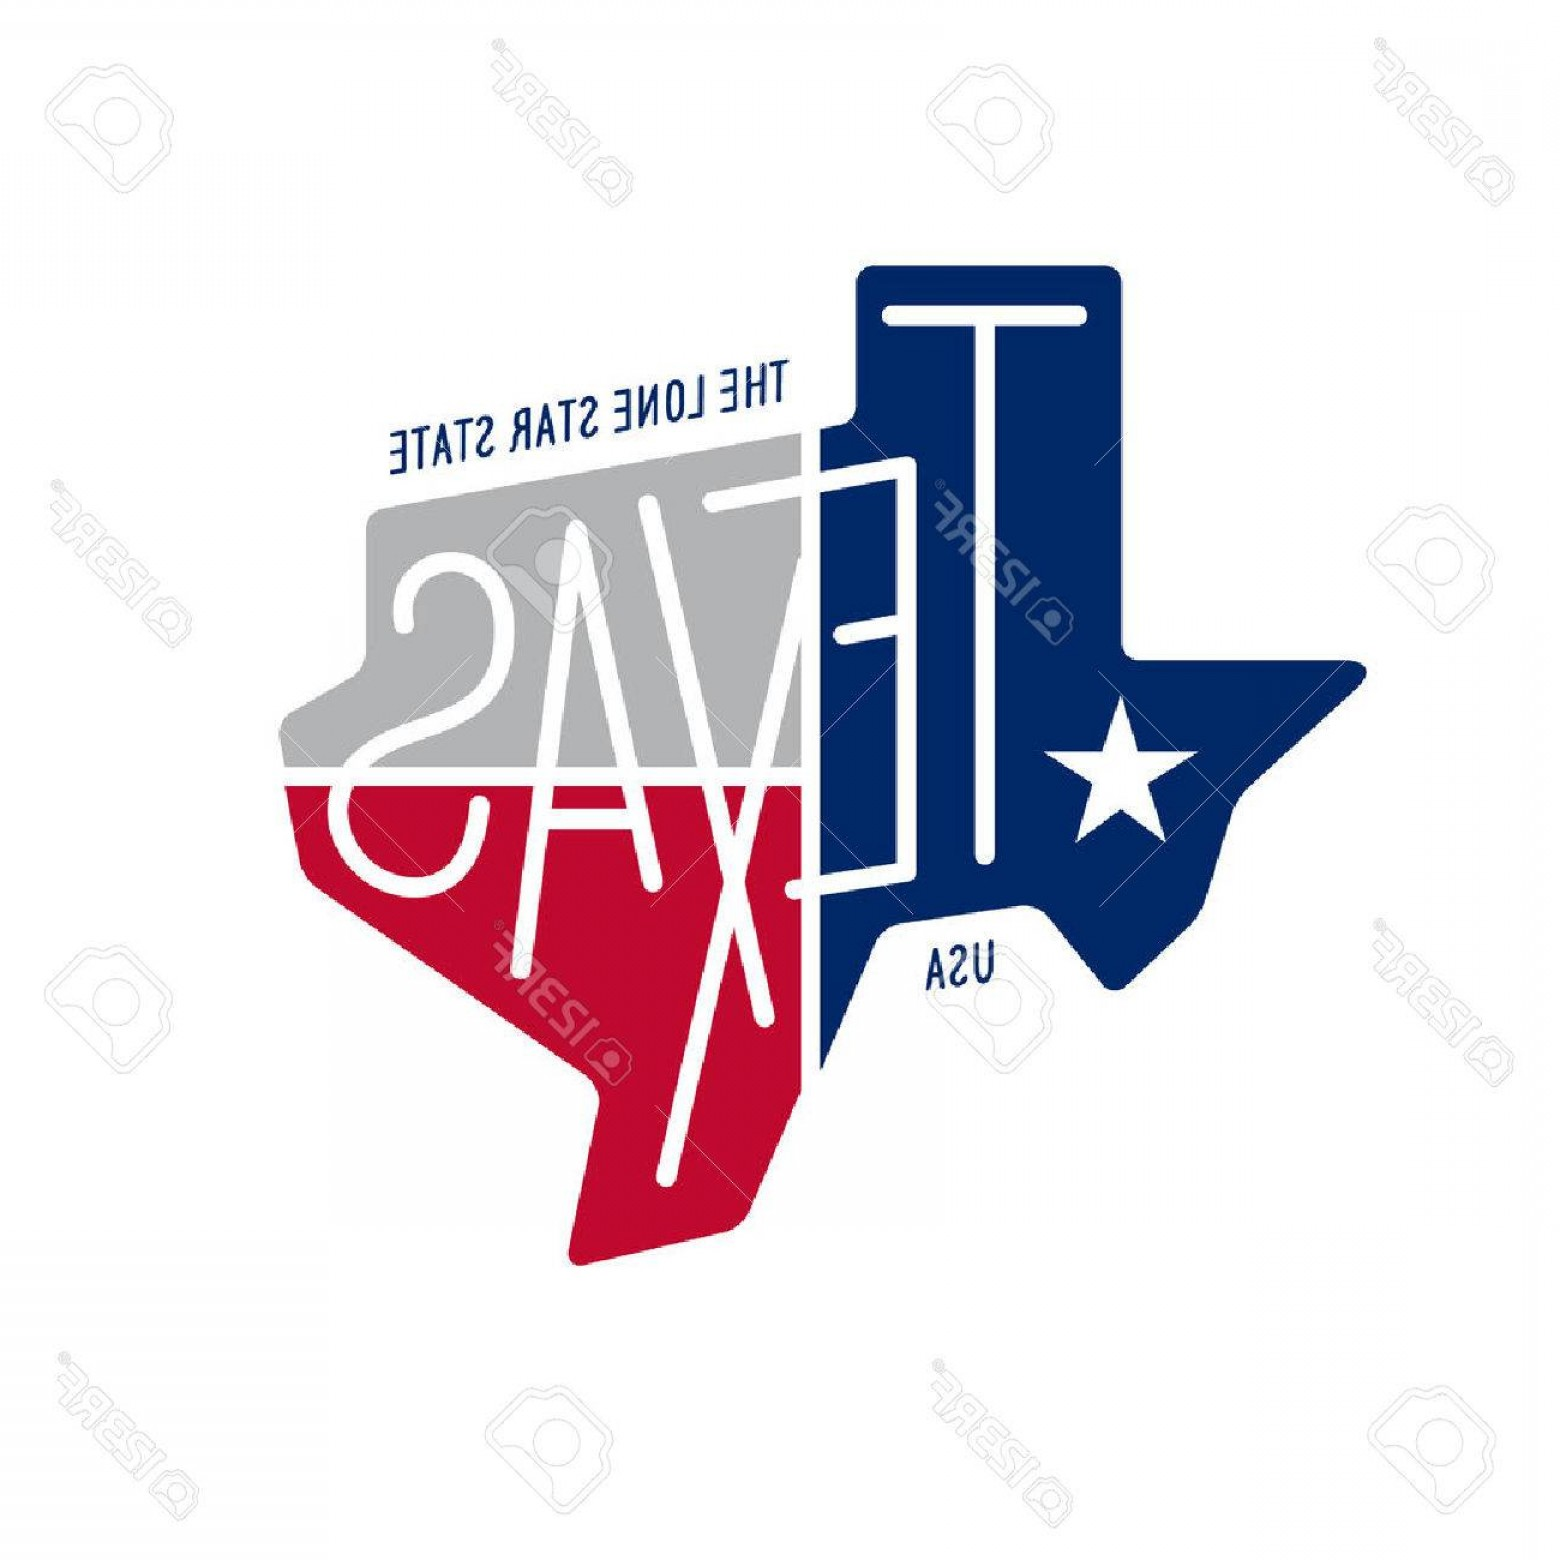 1560x1560 Photostock Vector Texas Related T Shirt Design The Lone Star State